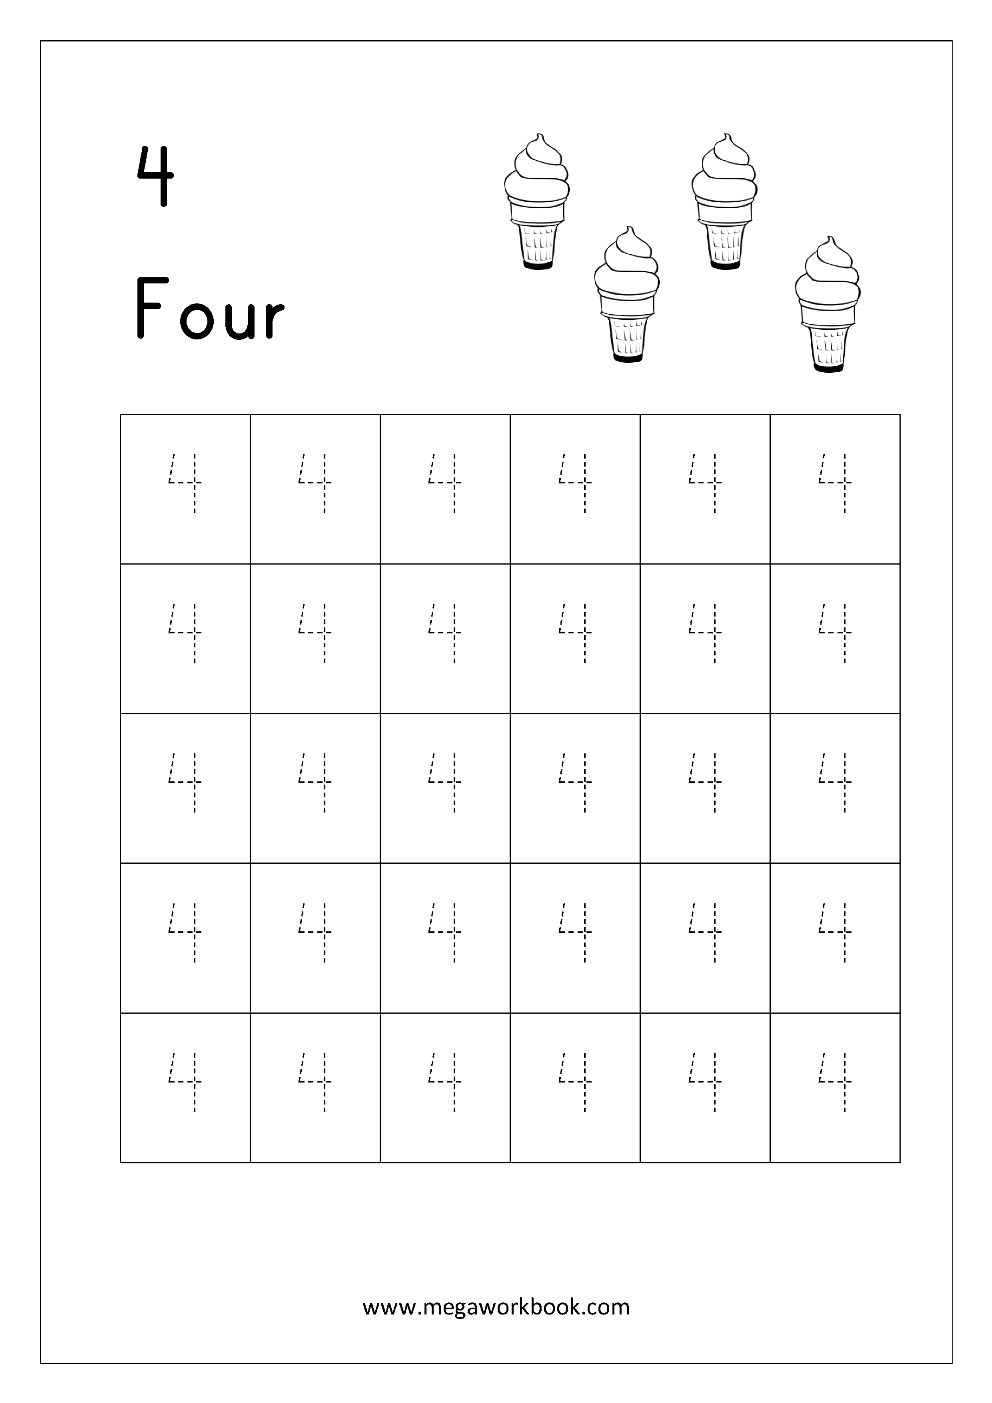 Free Math Worksheets Number Tracing and Writing MegaWorkbook – Number 4 Worksheet